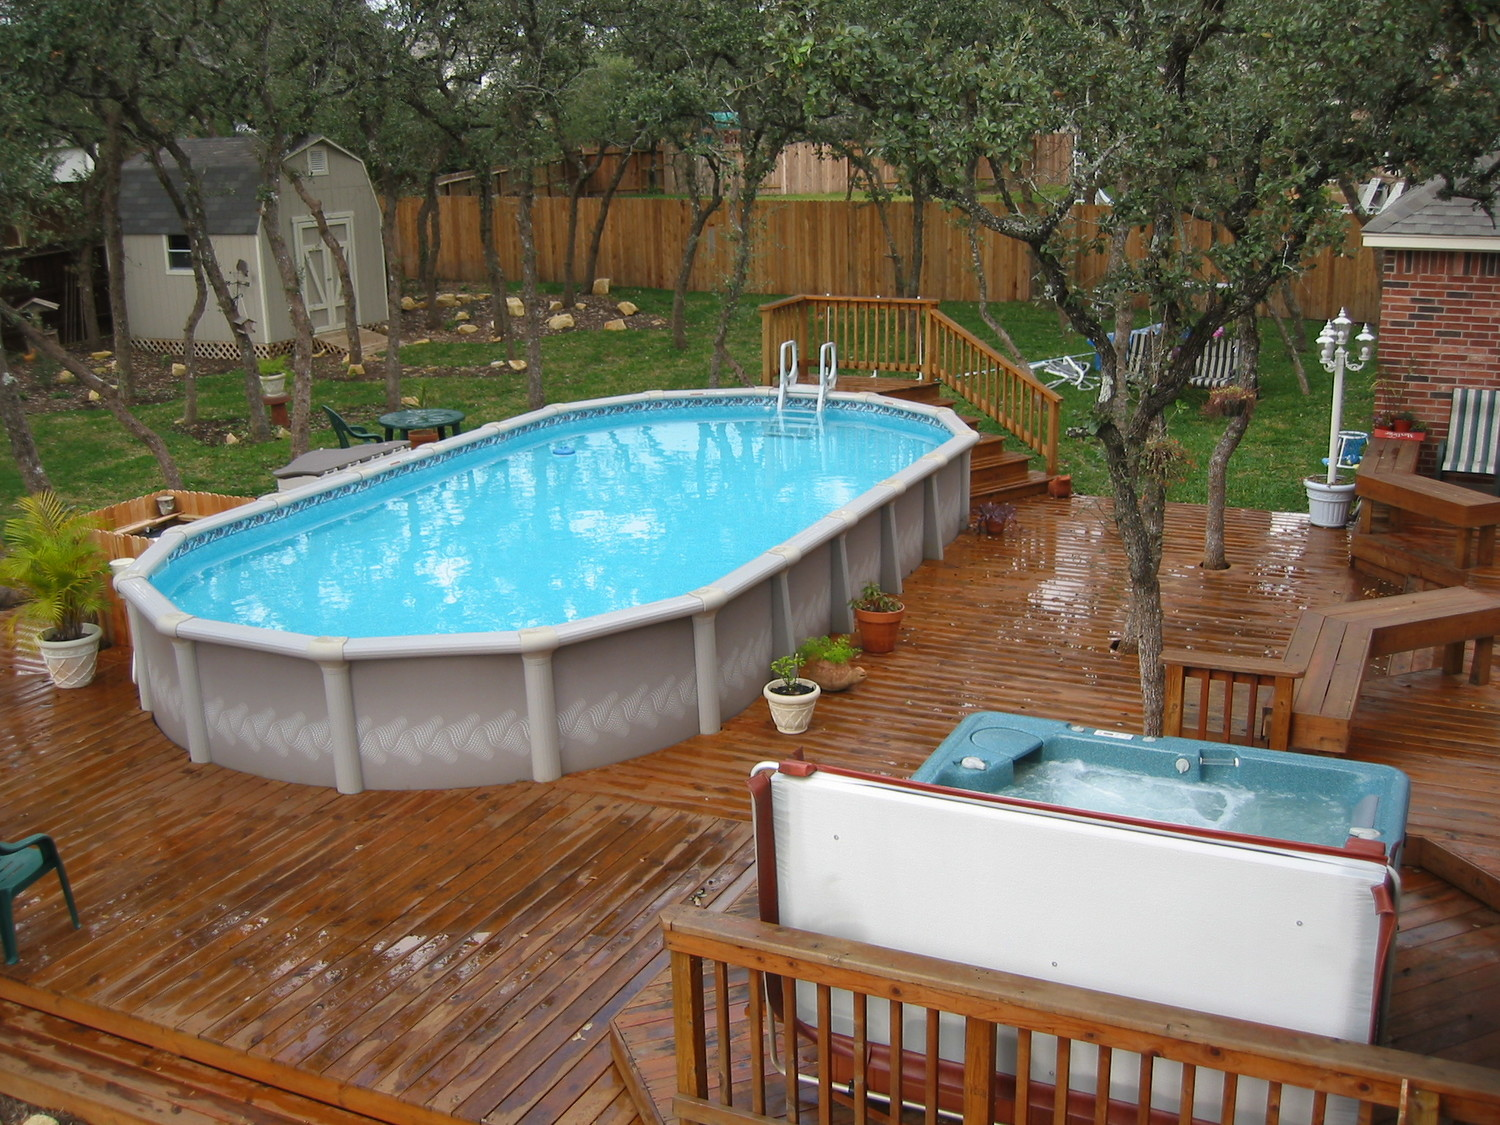 Above Ground Pools Blue Water Spas, What Is The Best Above Ground Oval Pool